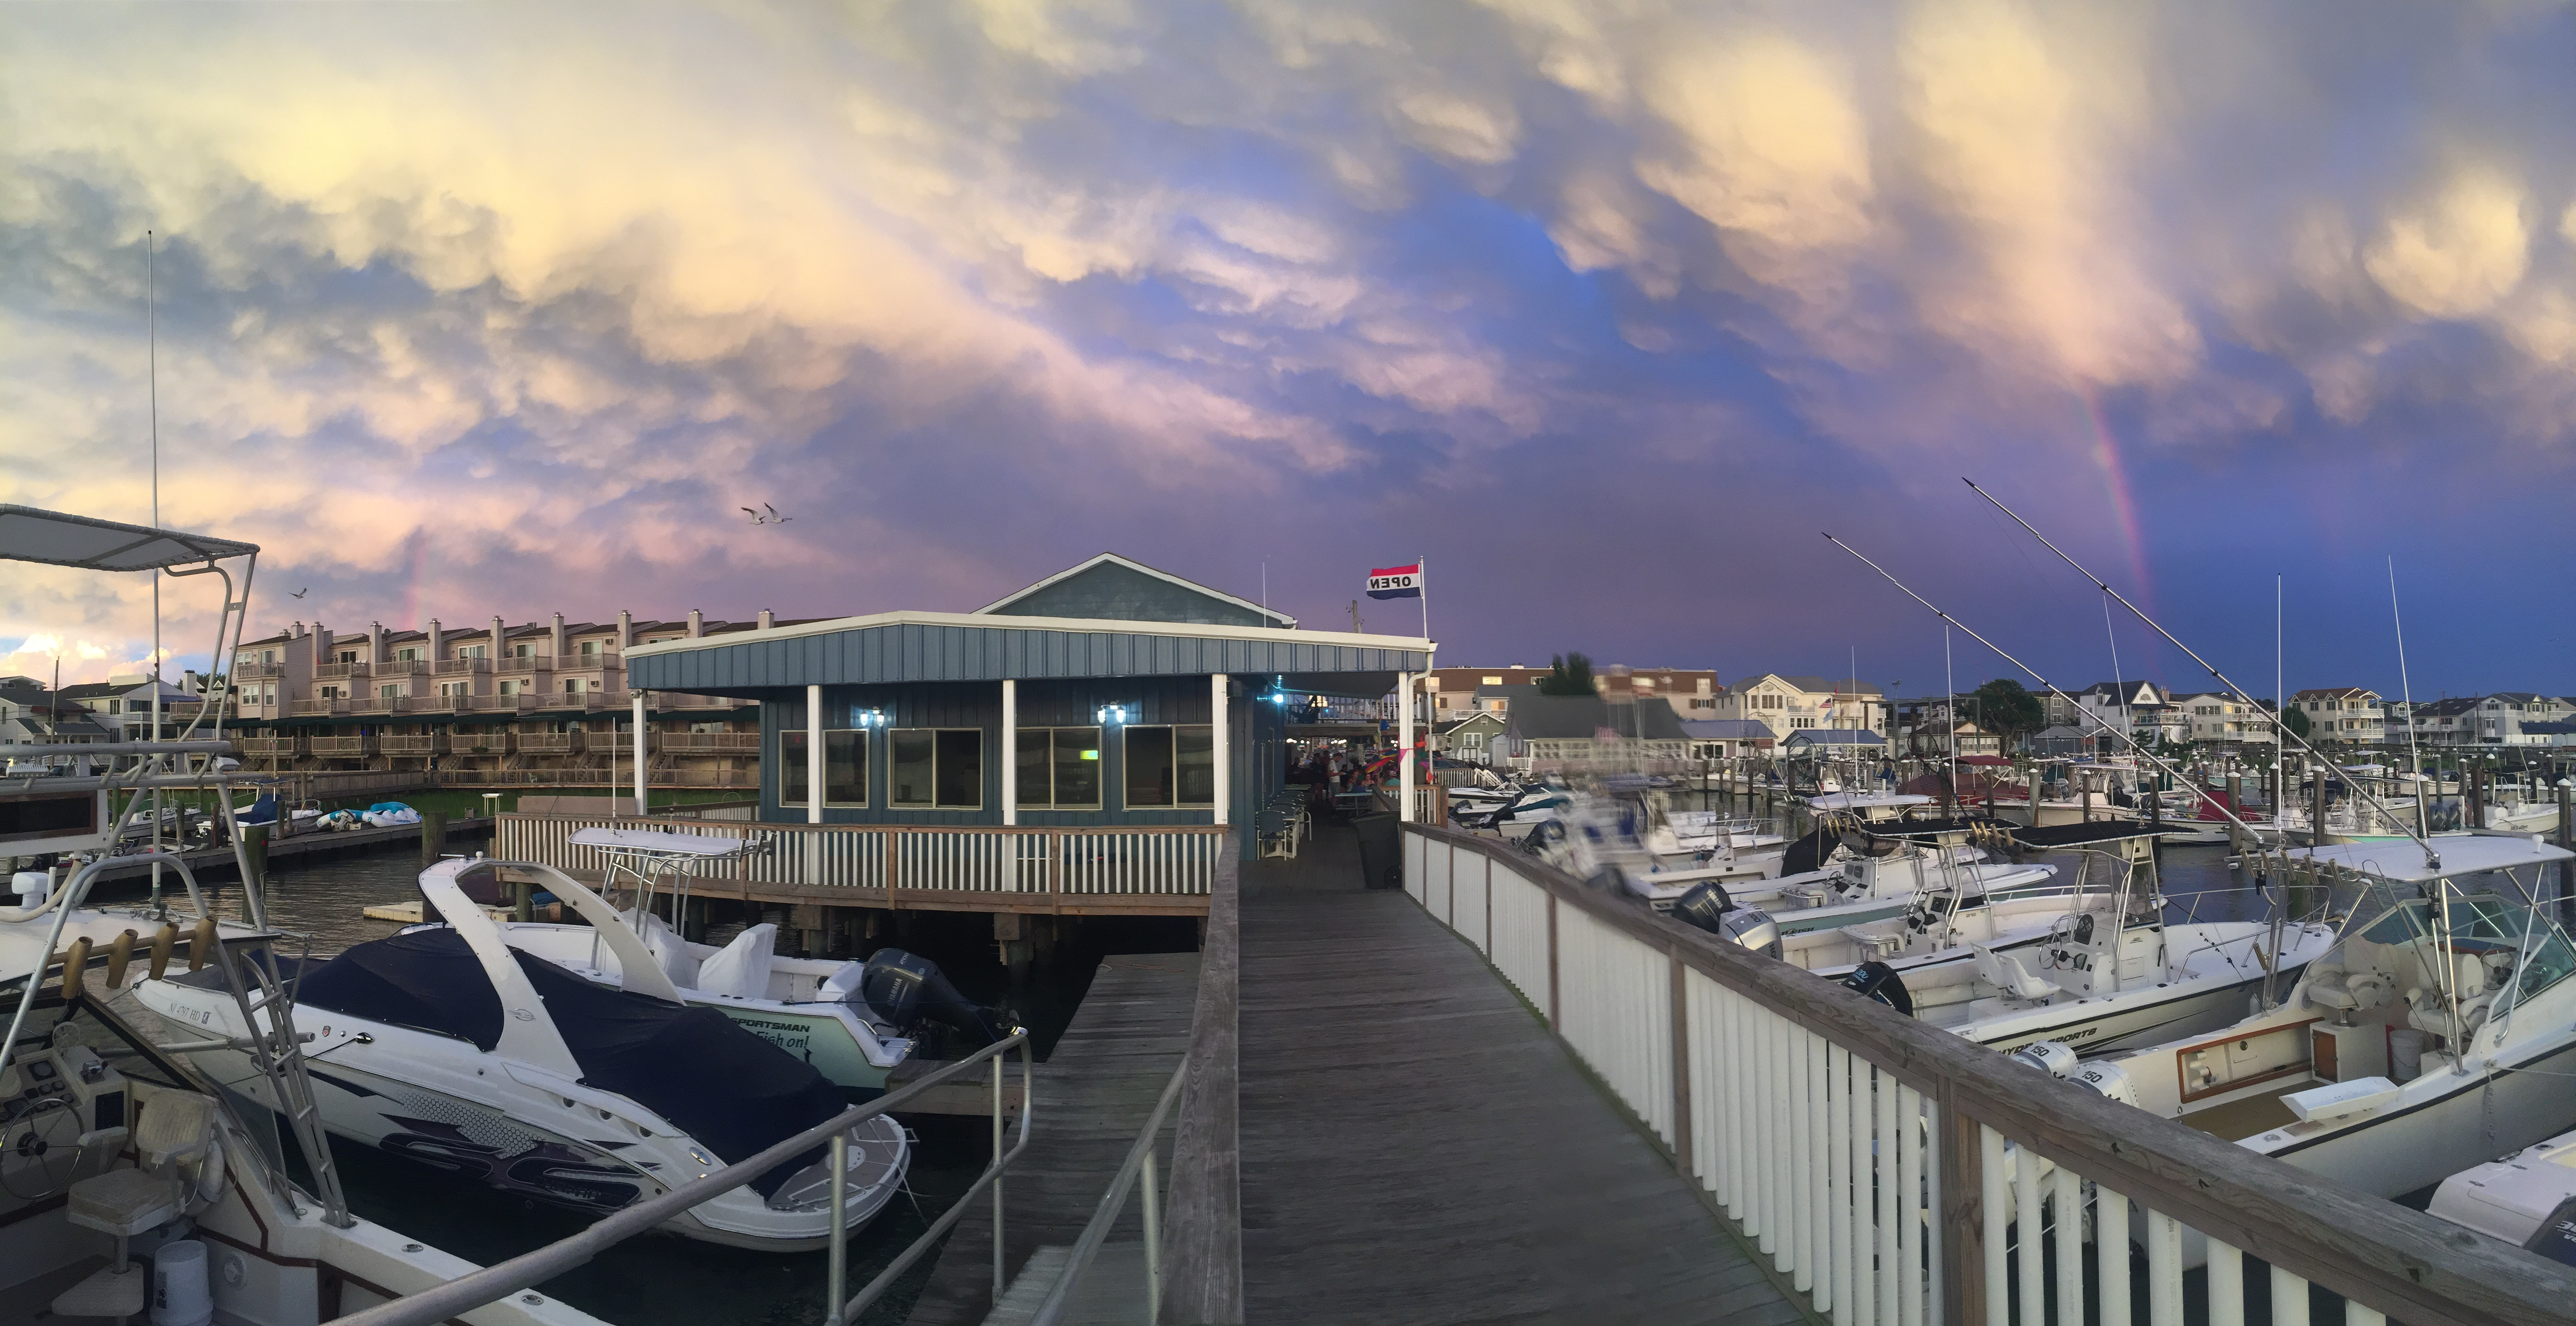 Home page - Sunset Pier